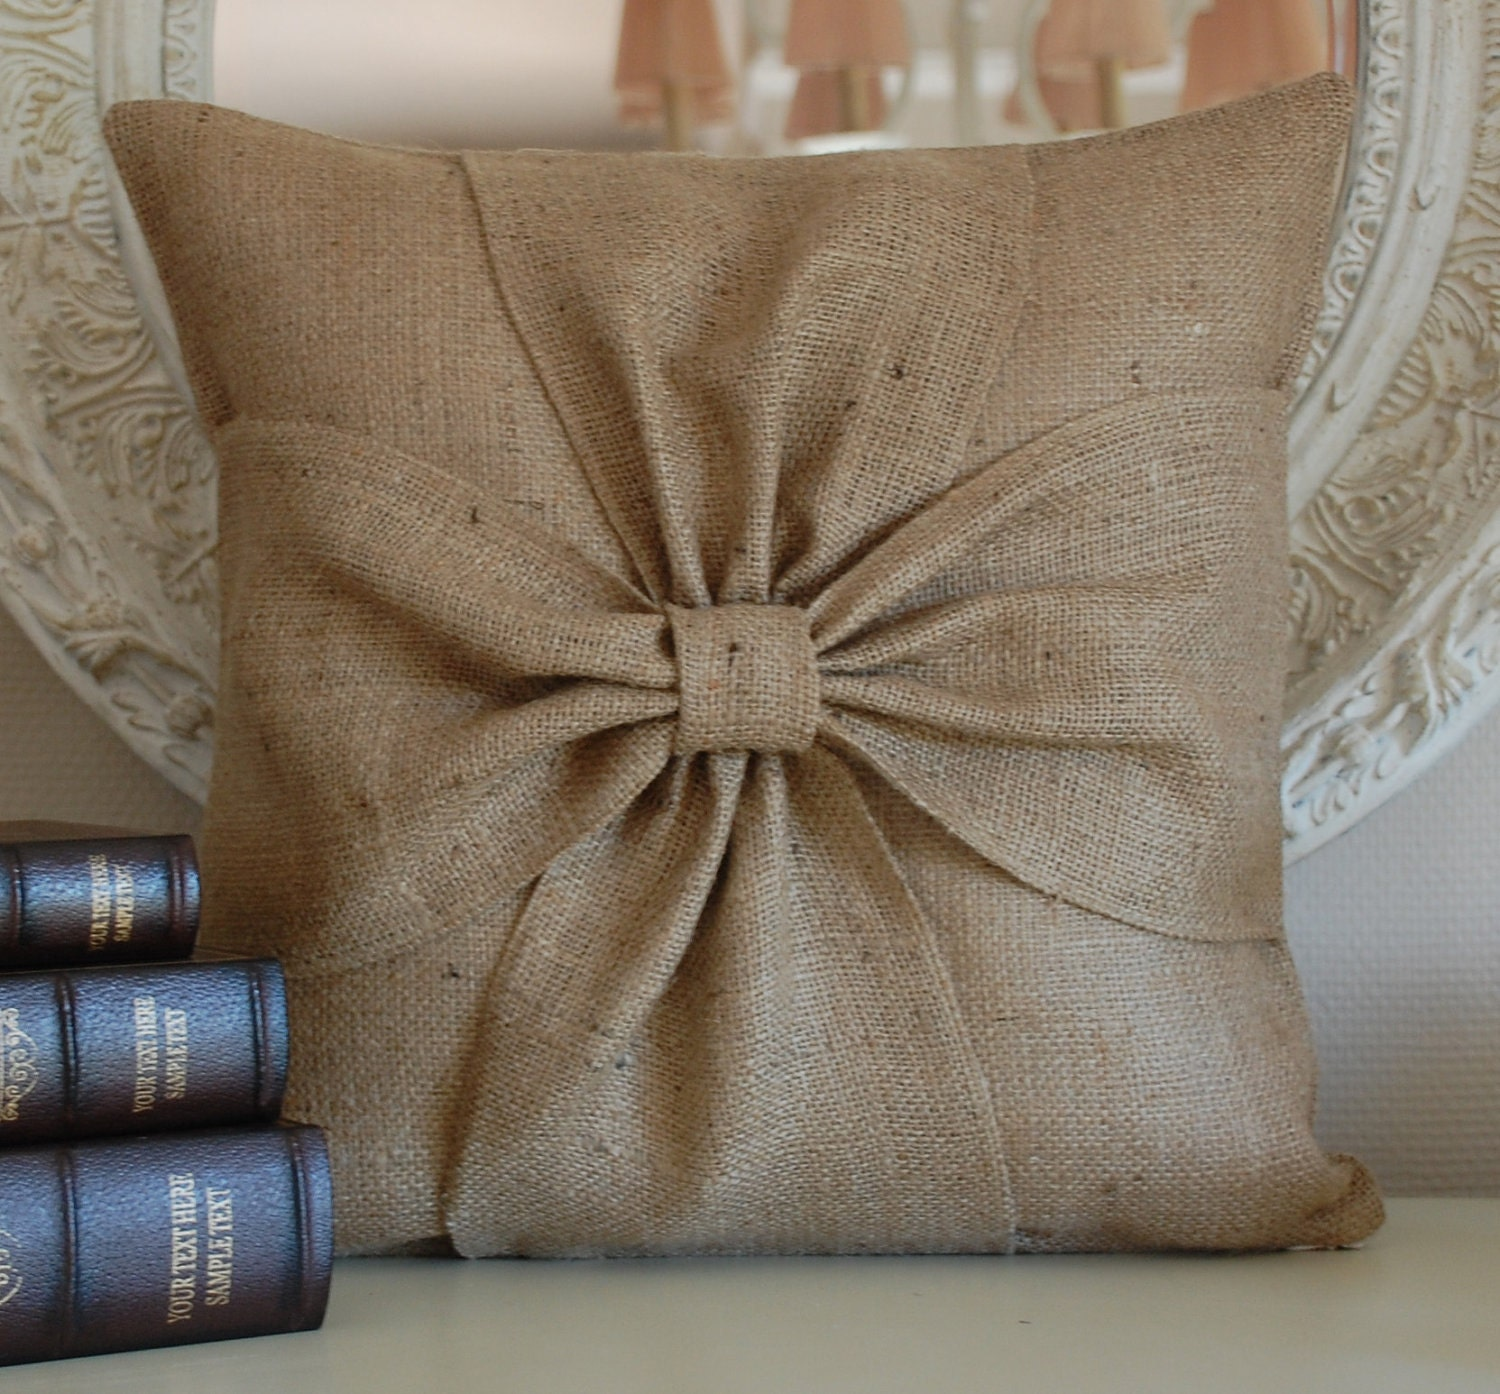 Burlap bow pillow cover by secdus on Etsy